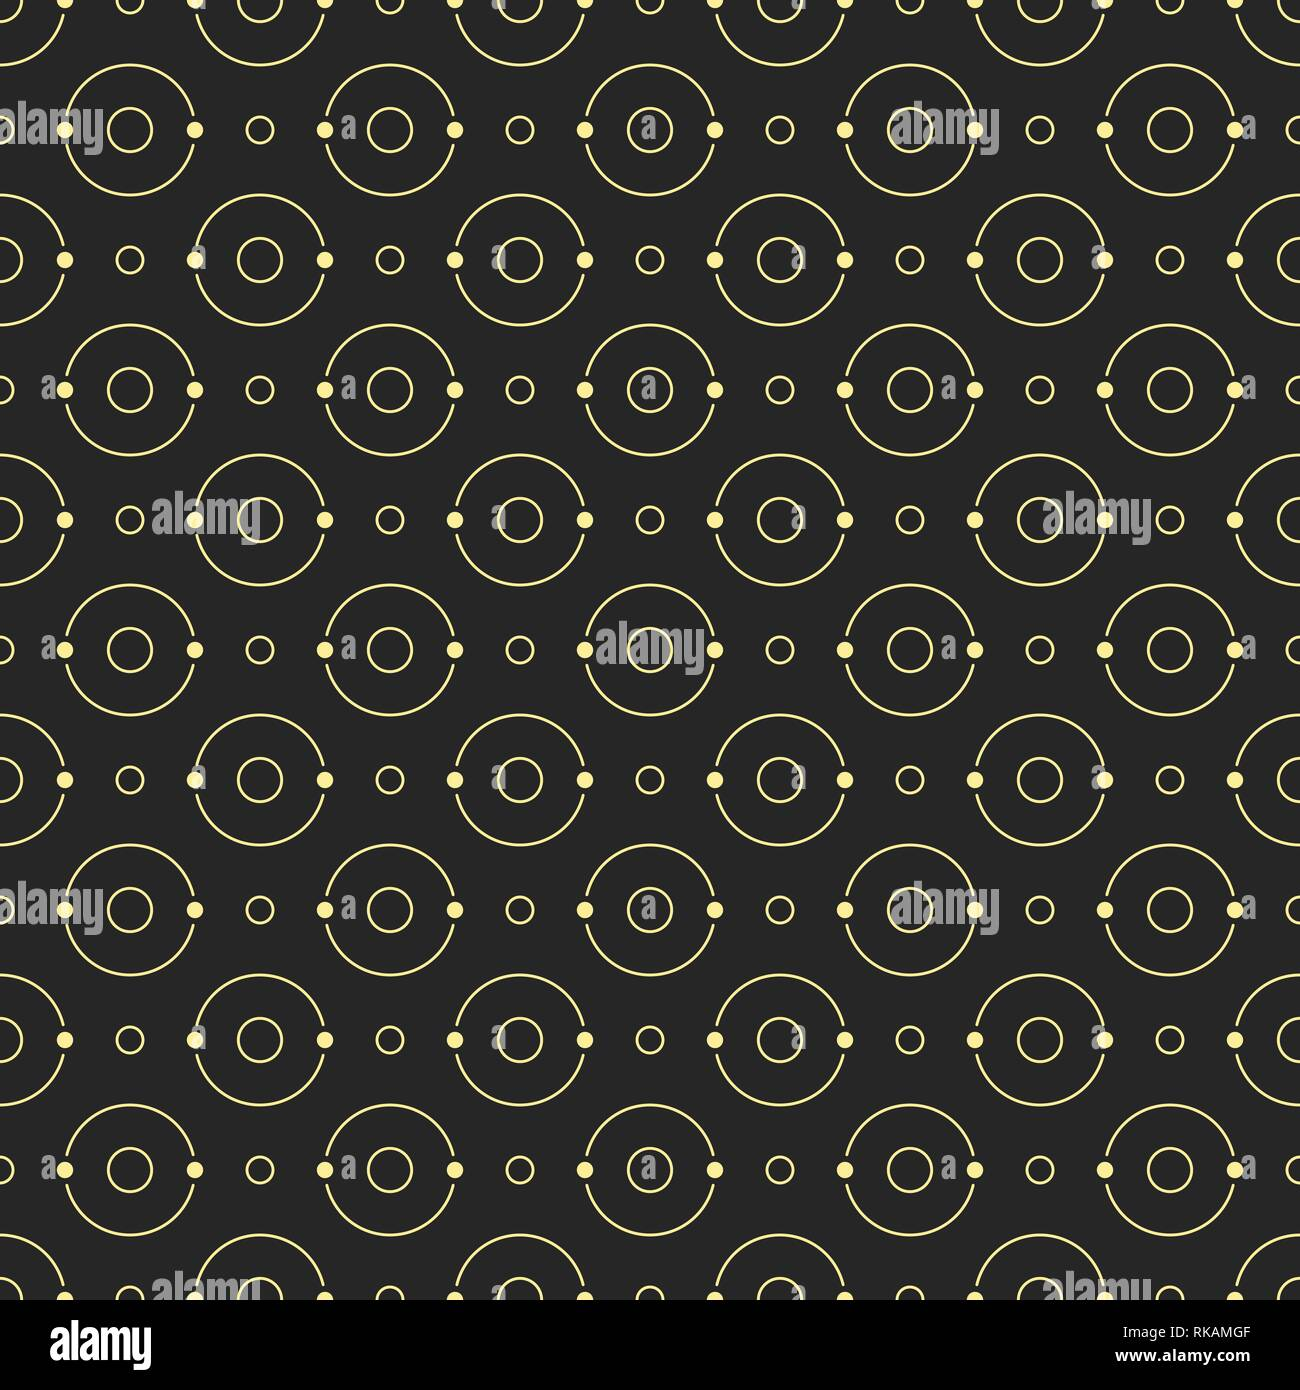 Abstract simple circles pattern of different sizes